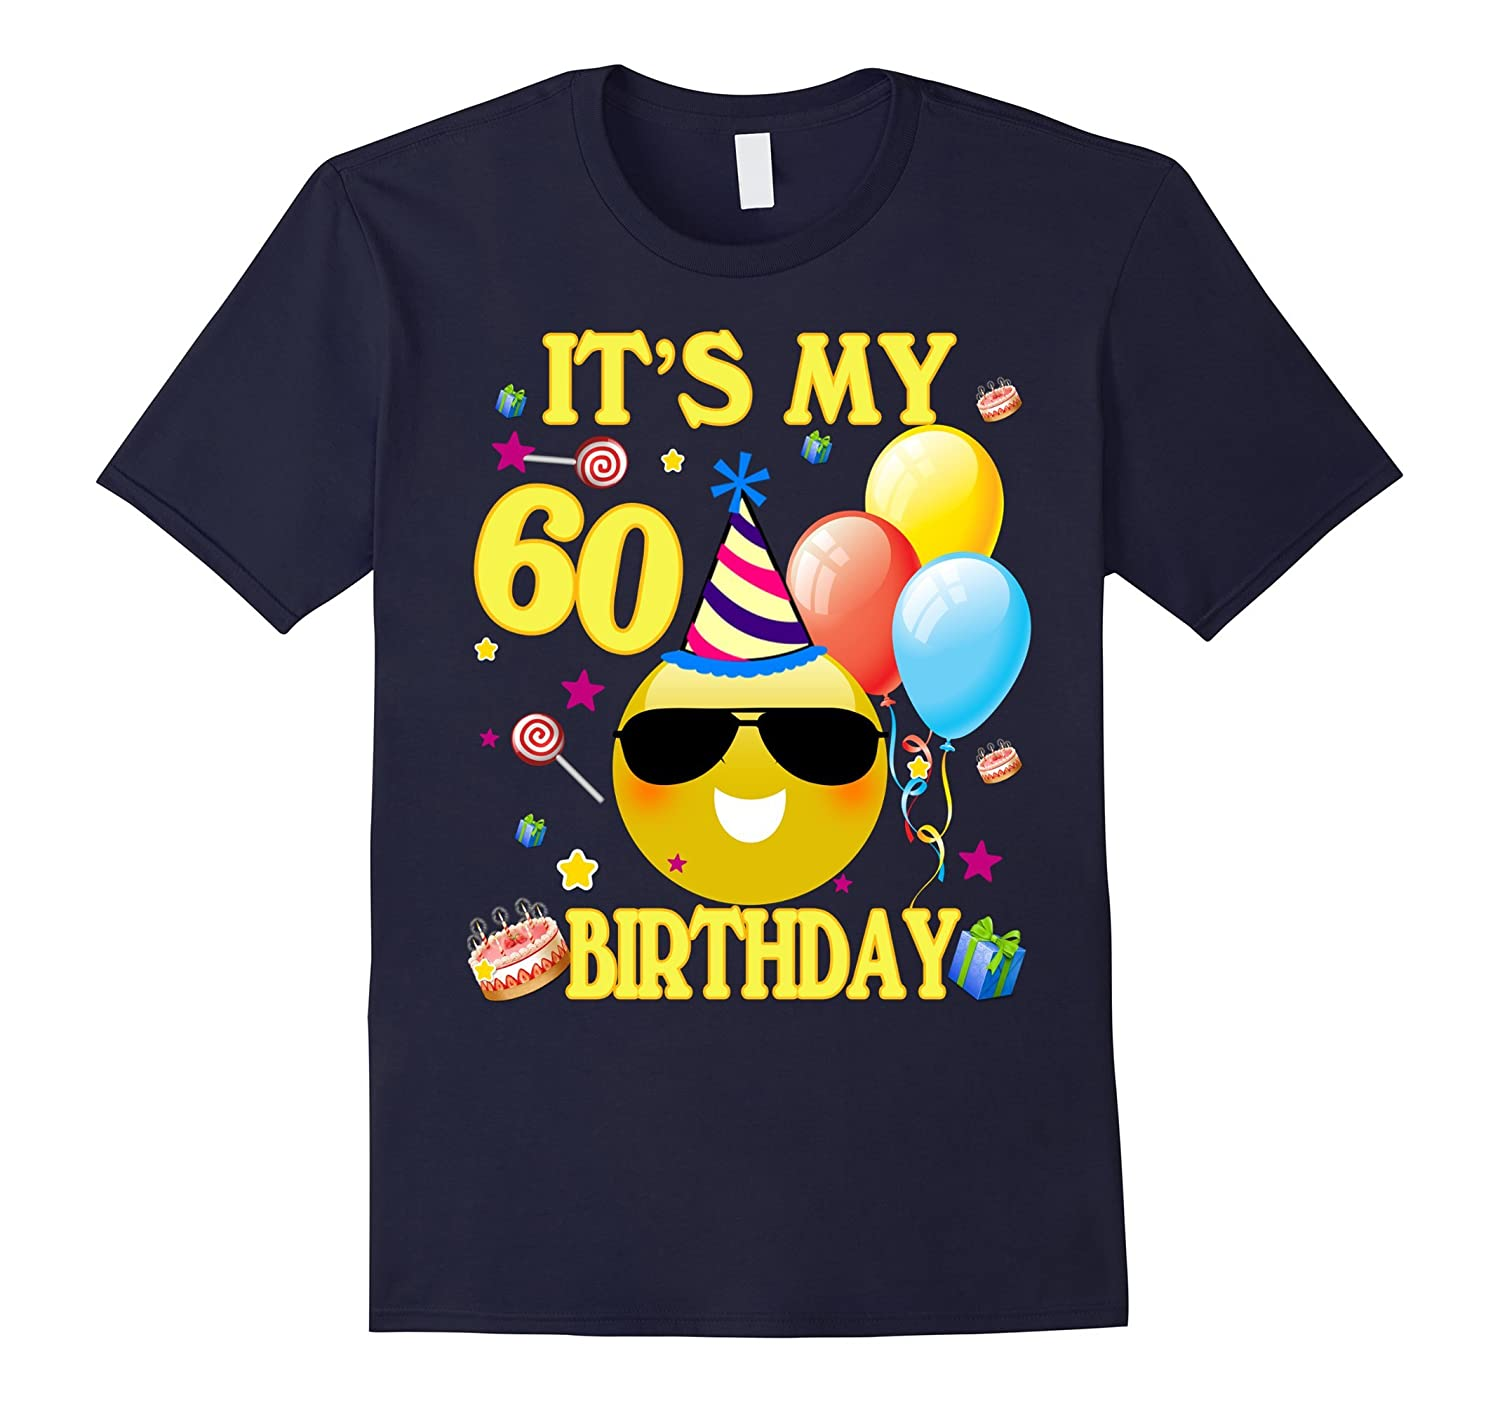 Its My 60th Birthday Shirt 60 Years Old Gift ANZ